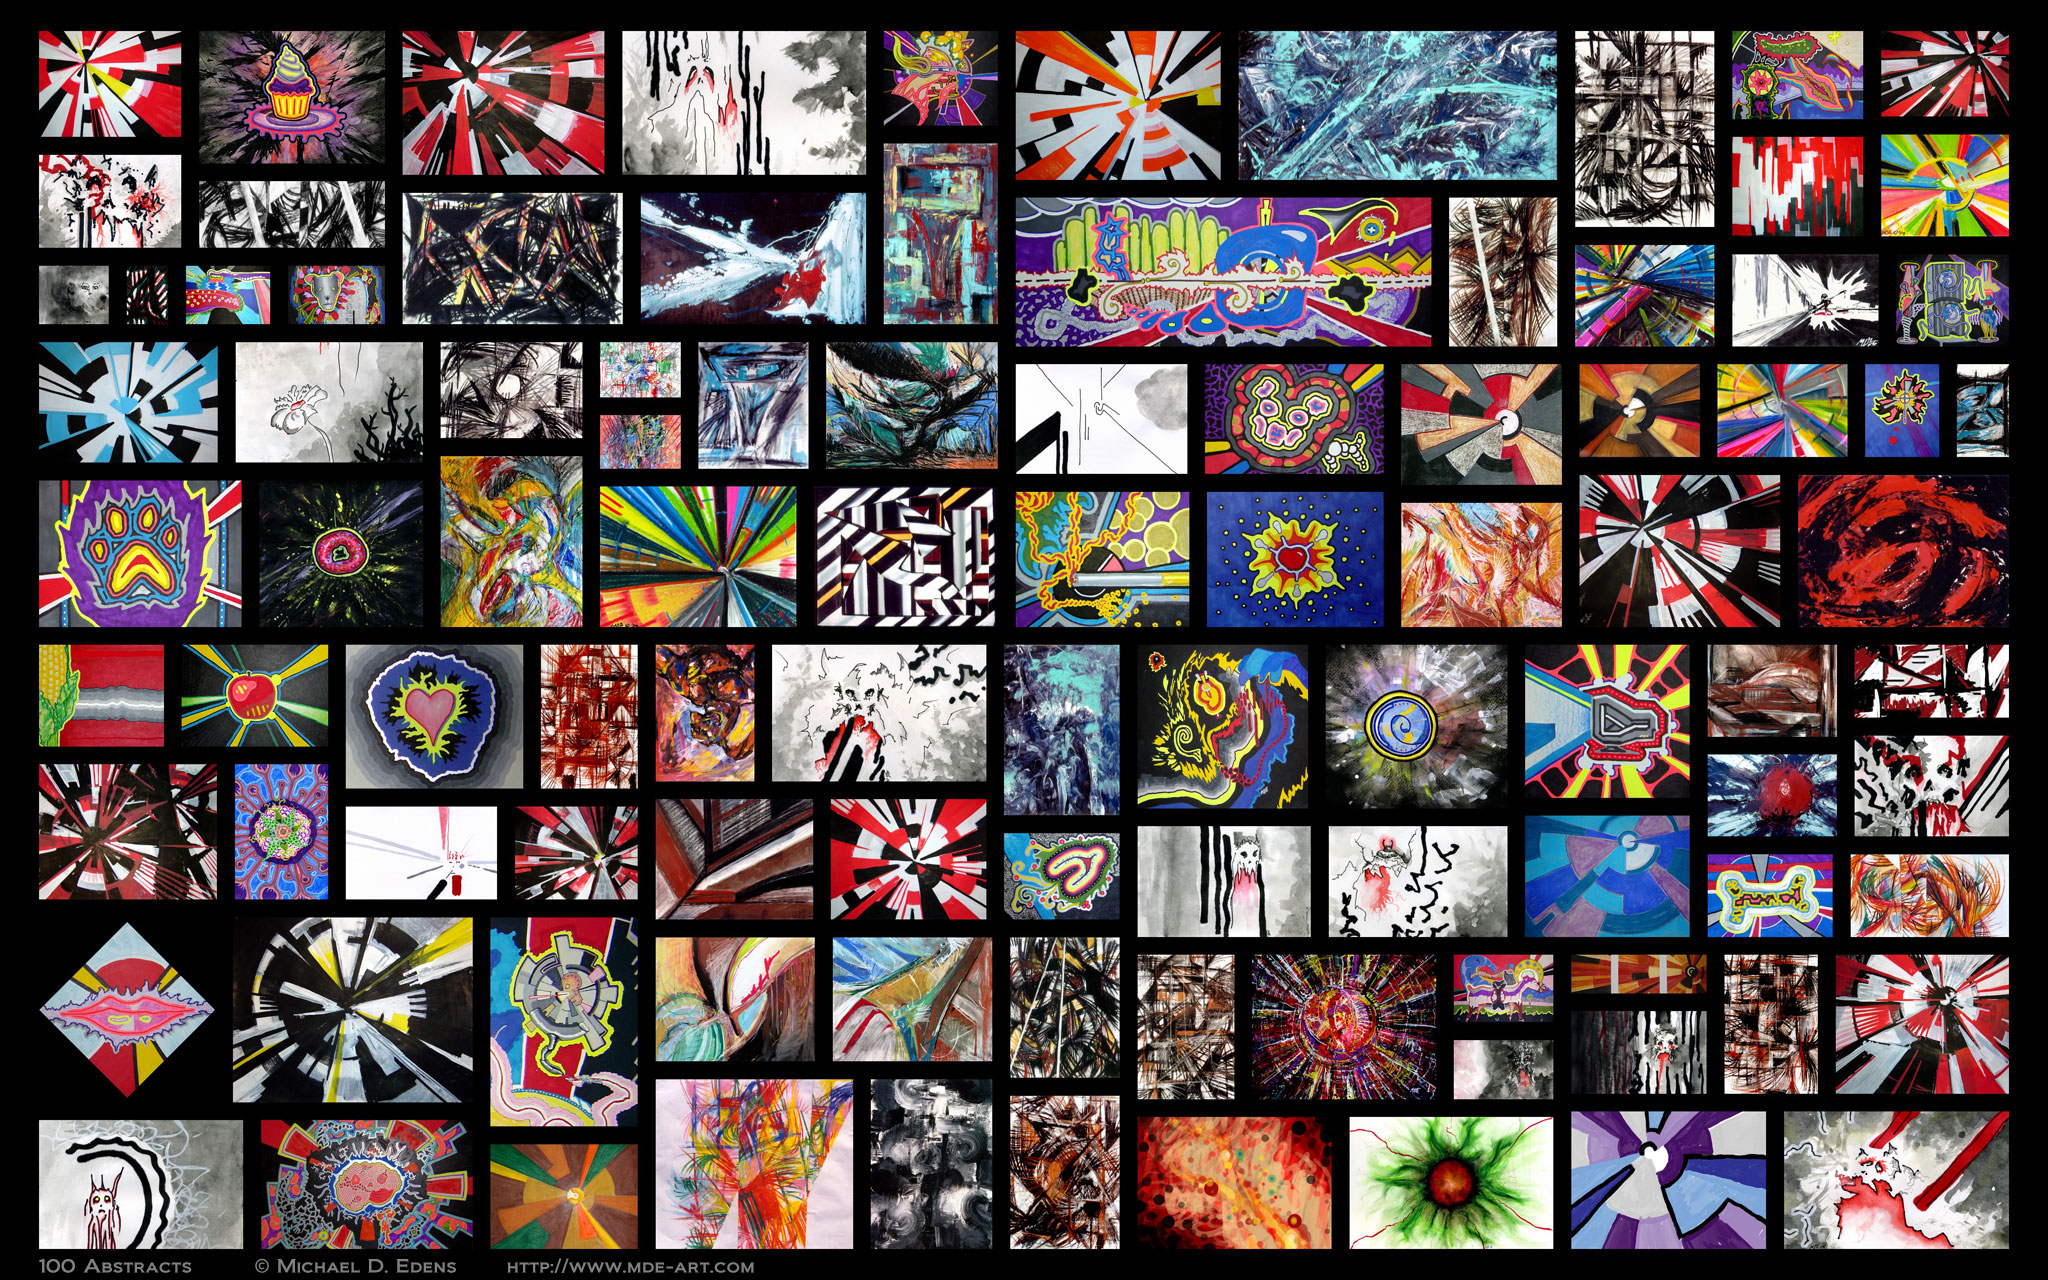 100 Abstracts - Collage of Artwork